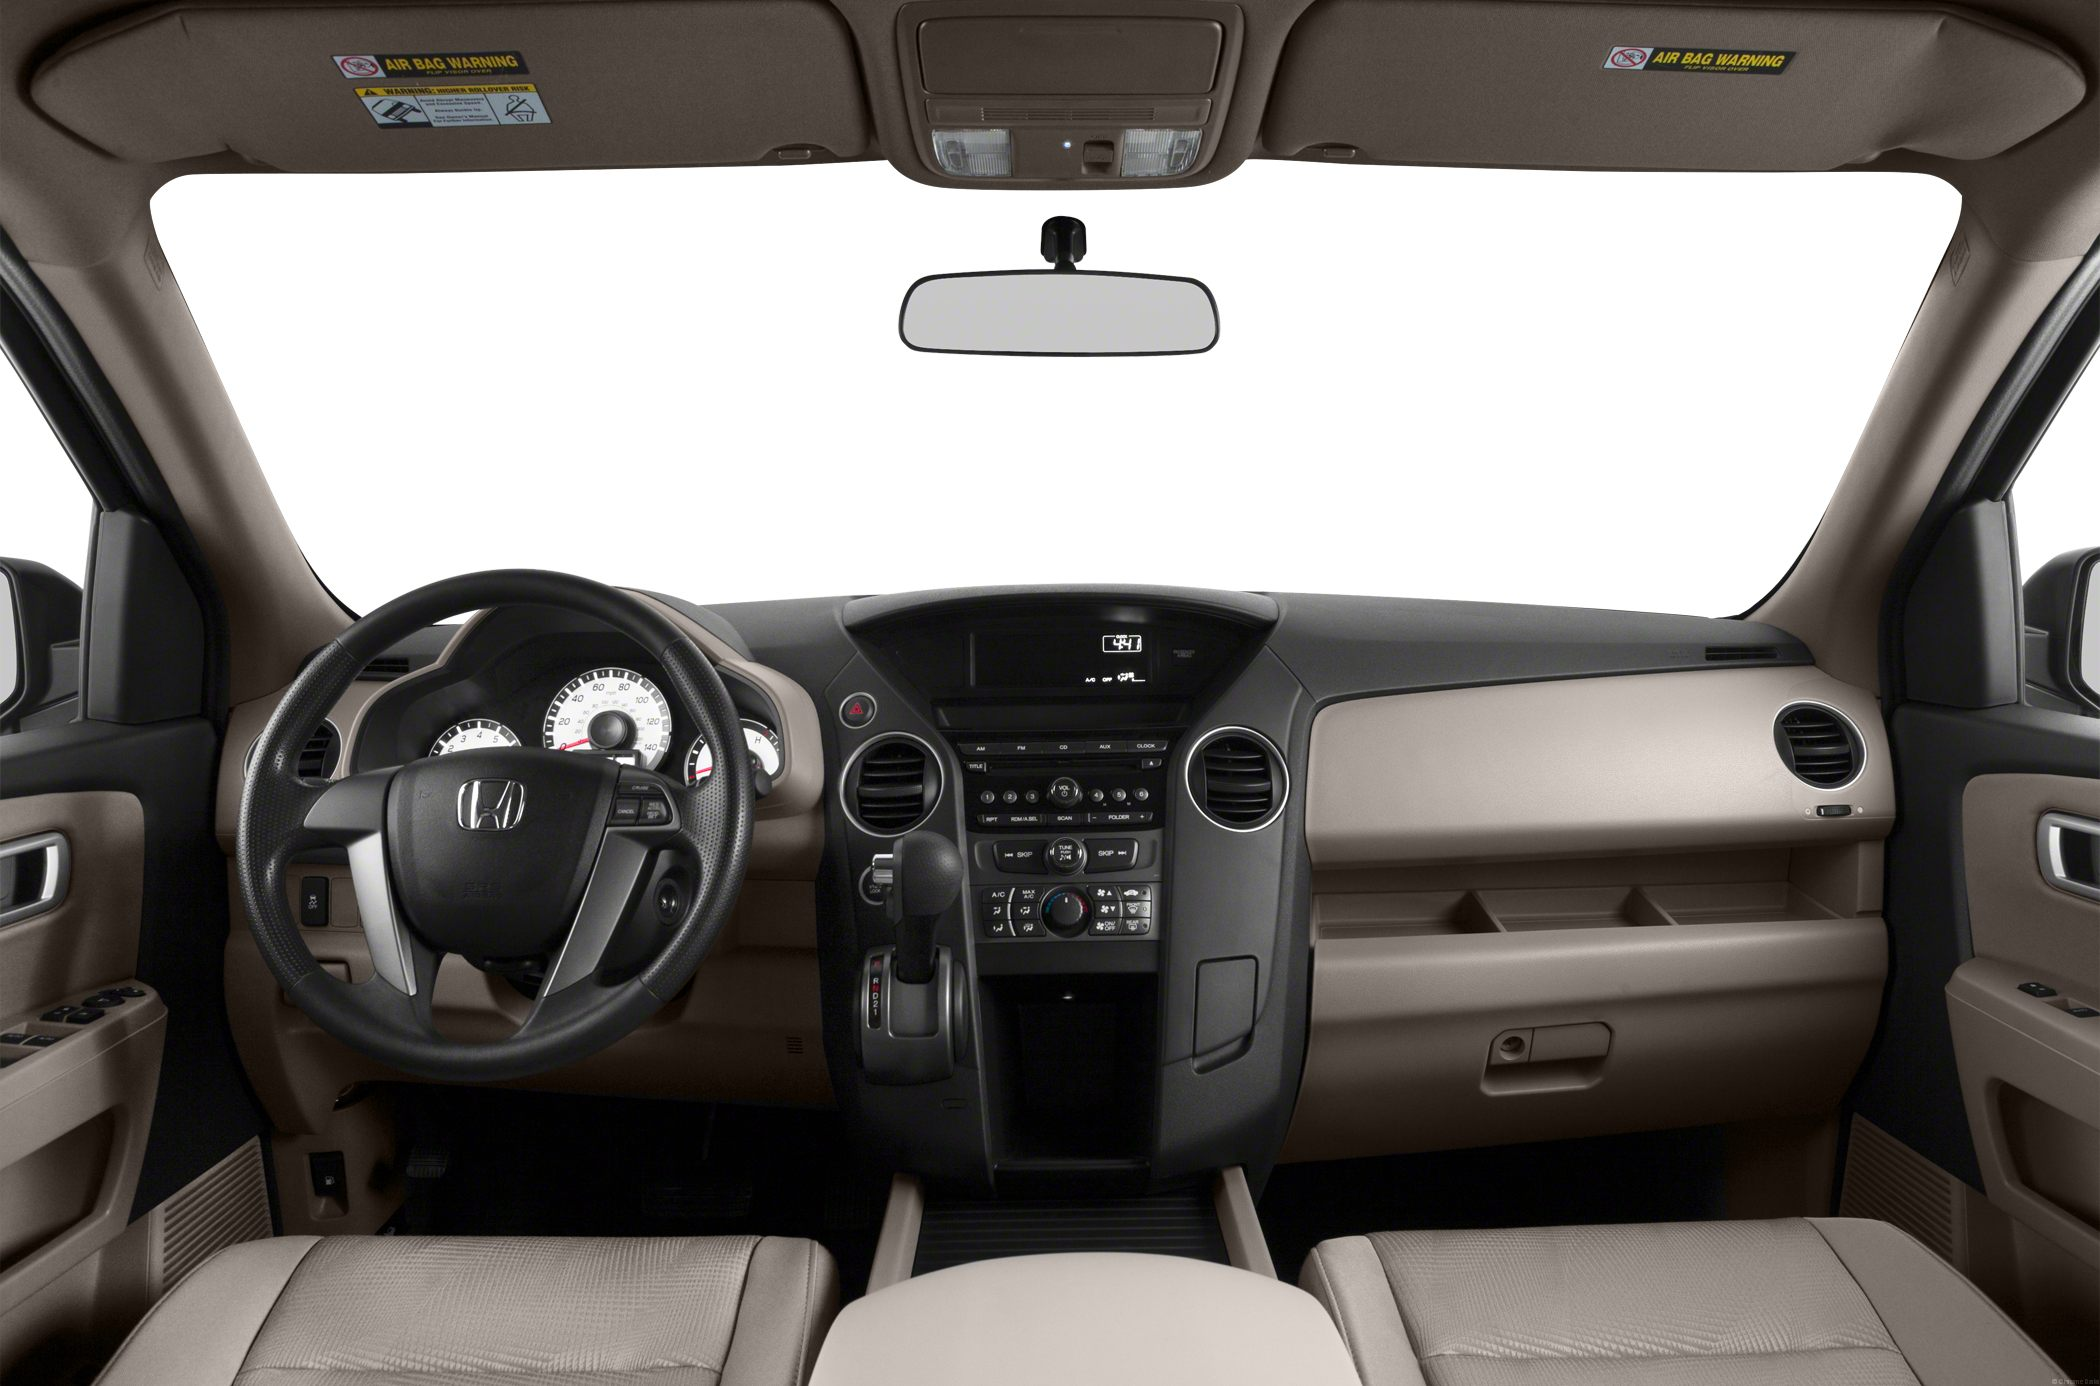 Charming Pictures Of Honda Pilot Ii 2013 #14